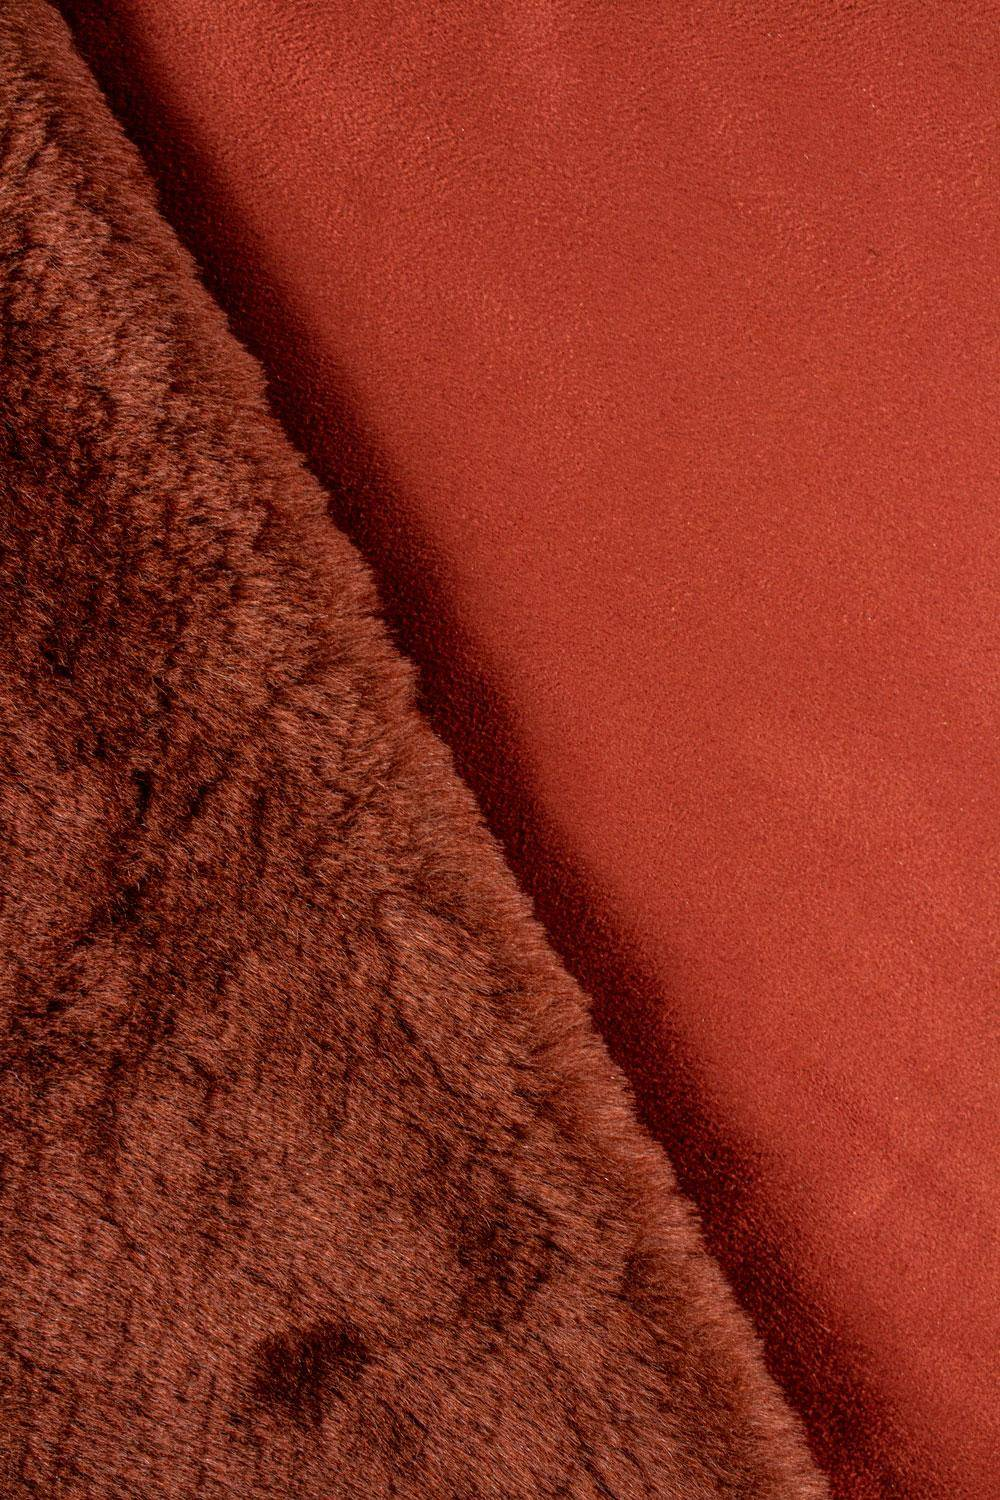 Fabric - Eco Fur With Suede Underside - Copper/Brick Colour - 140 cm - 660 g/m2